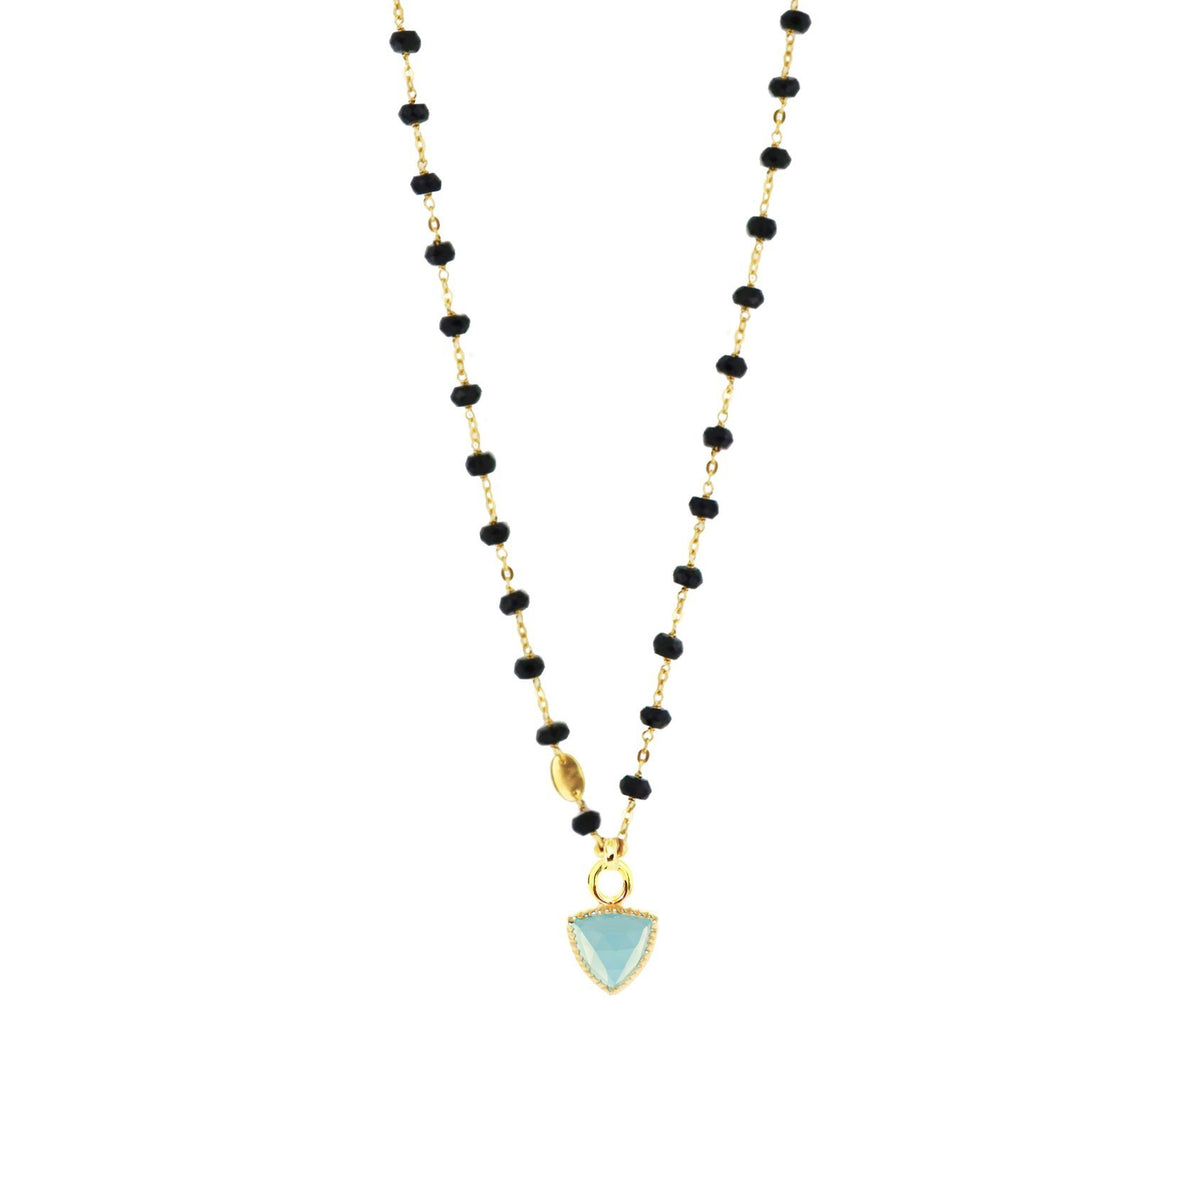 FREEDOM ICON - AQUA CHALCEDONY & GOLD - SO PRETTY CARA COTTER